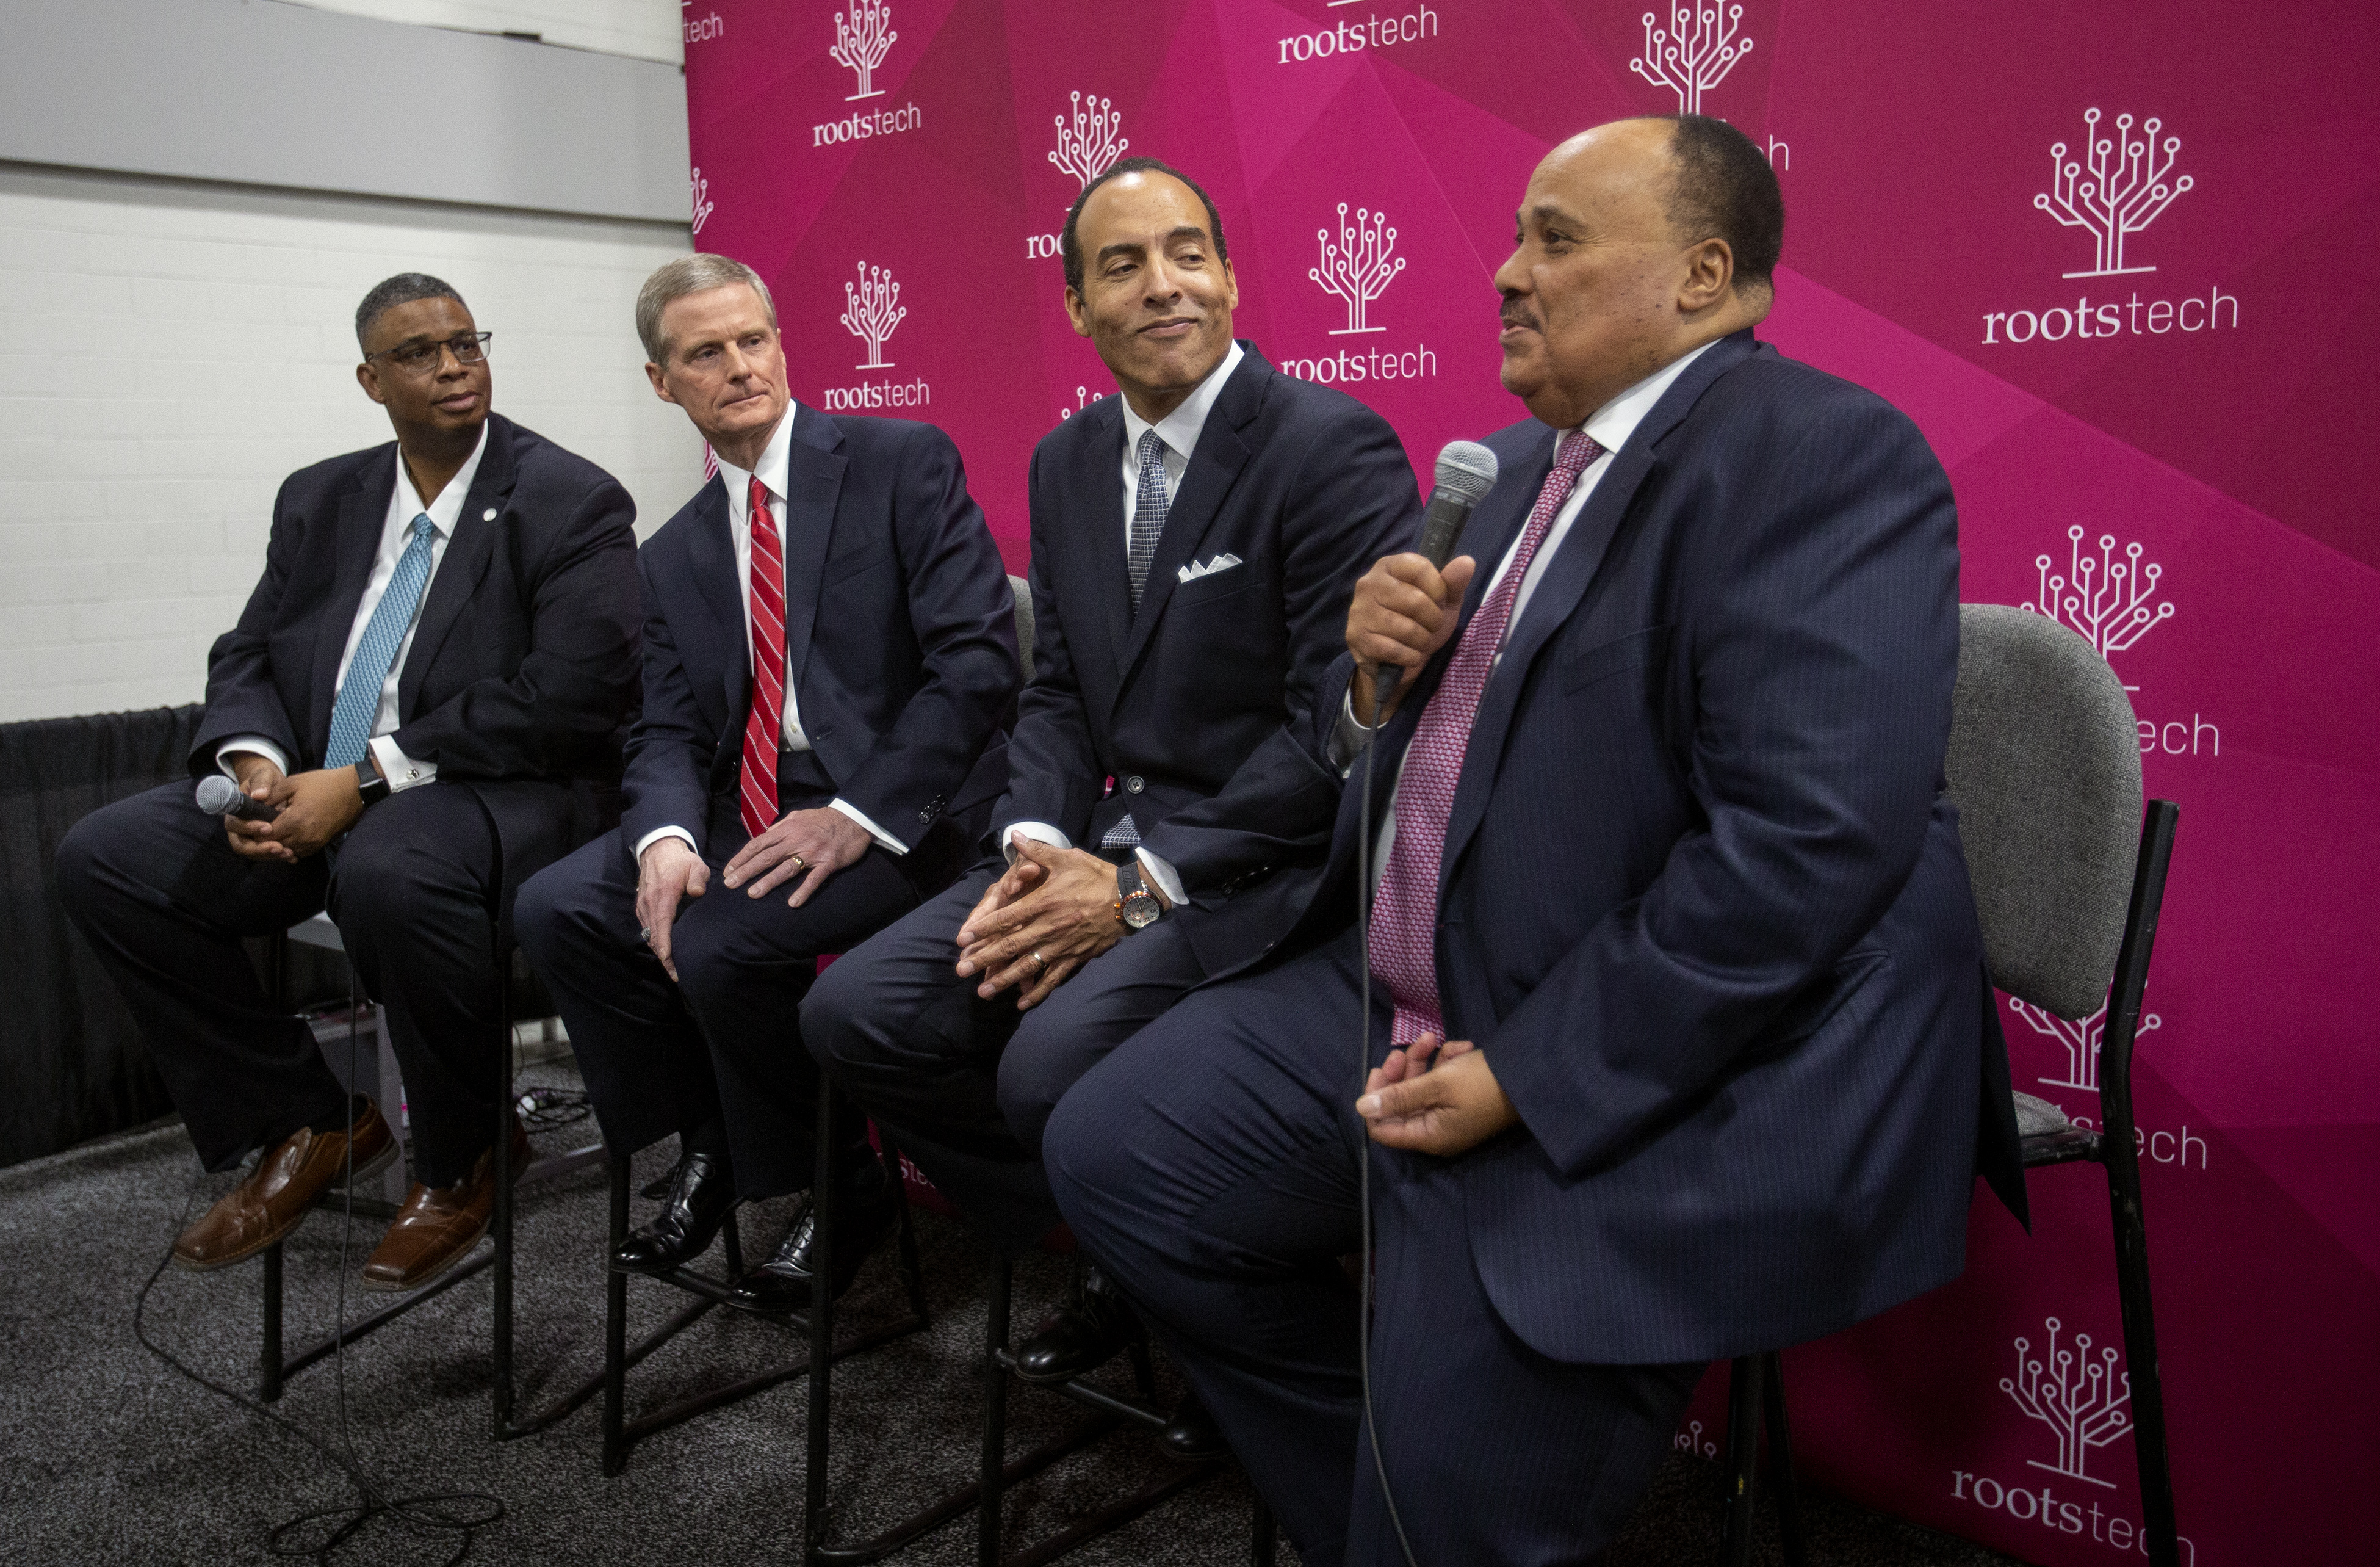 Thom Reed, Deputy Chief Genialogical Officer with FamilySearch joins Elder David A. Bednar of the Quorum of the Twelve Apostles of The Church of Jesus Christ of Latter-day Saints, Museum president and CEO Micael Boulware Moore and Martin Luther King III, son of the Rev. Dr. Martin Luther King Jr. at a press conference following the $2 million donation from the church to the International African American Museum Center for Family History, at Rootstech in Salt Lake City on Wednesday, Feb. 27, 2019.